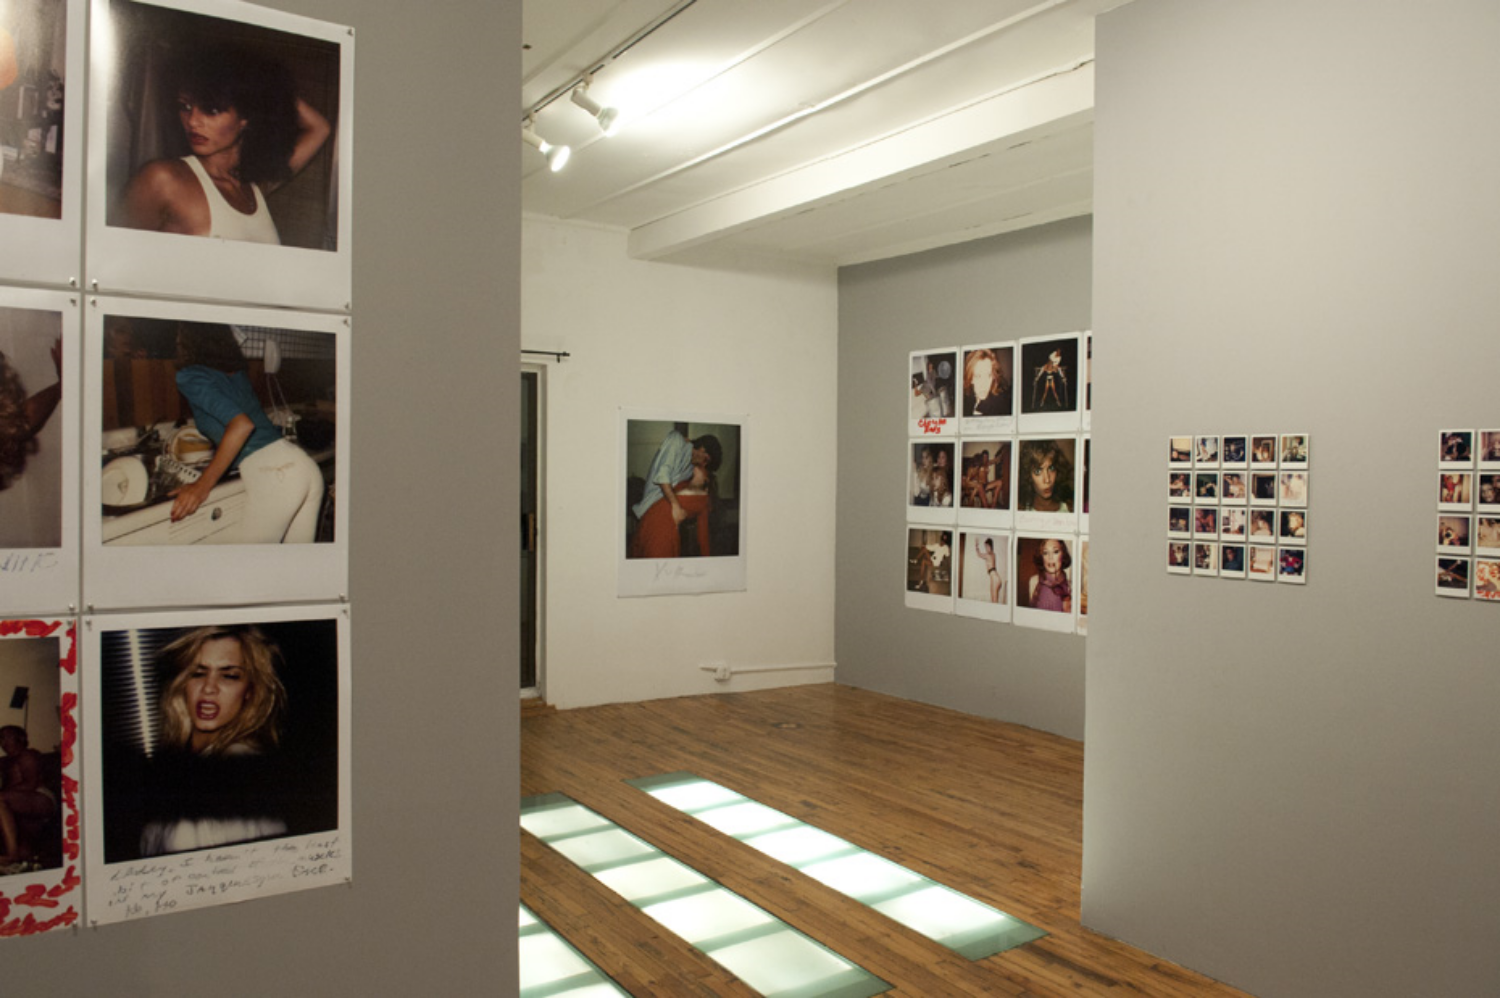 Image: Robert Whitman, F***ed Up In Minneapolis, installation view /    ©   Robert Whitman   ©   Black & White Gallery/Project Space